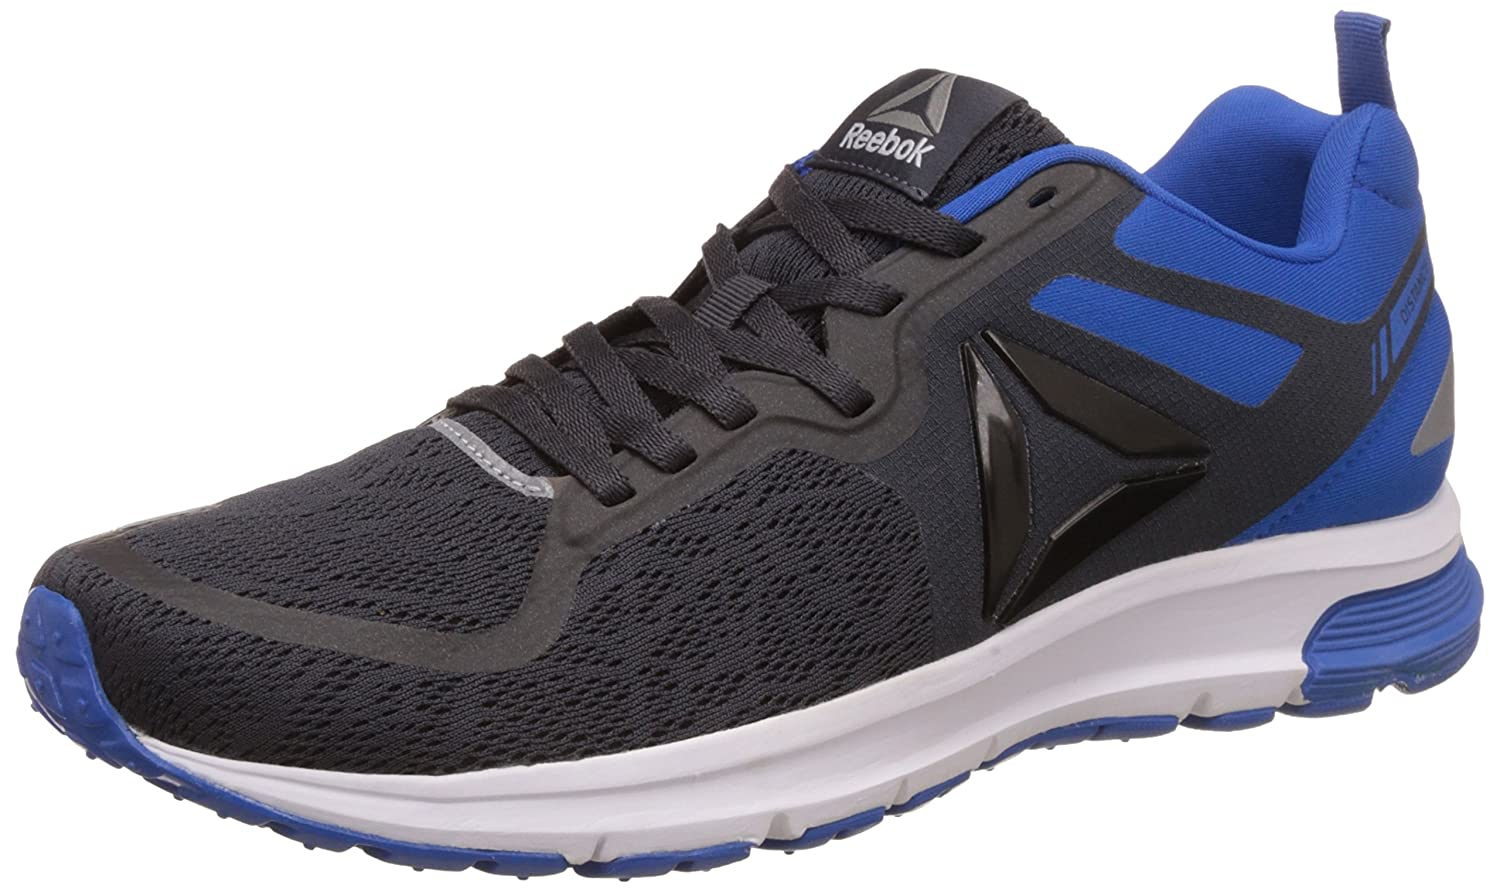 Reebok Men s Running Shoes  Buy Online at Low Prices in India - Amazon.in 2fe44353b